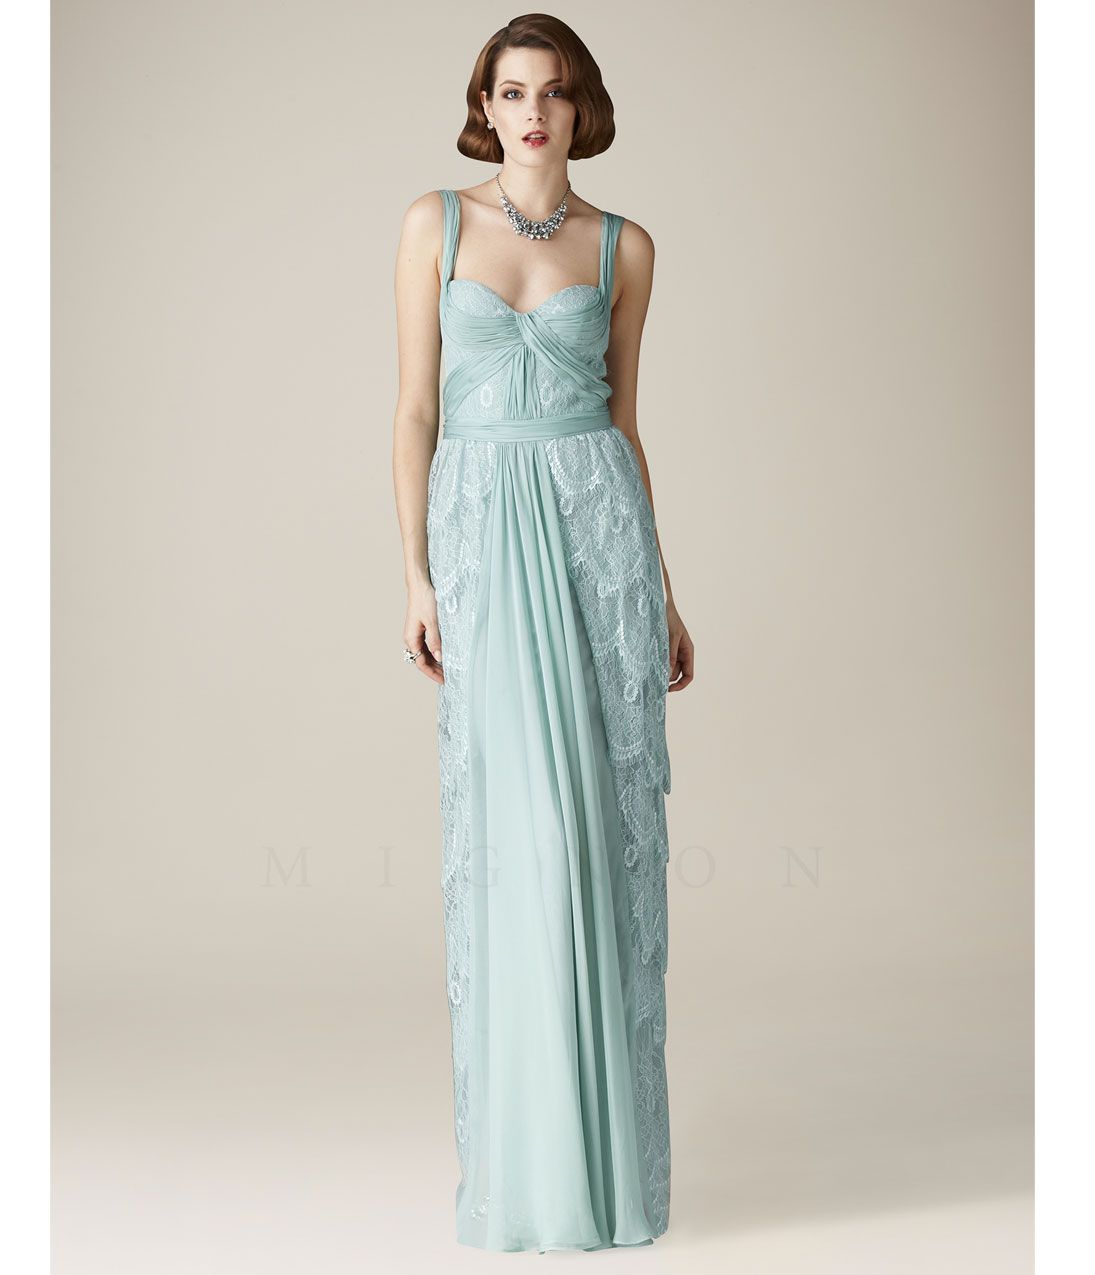 1930s style prom dresses formal dresses evening gowns